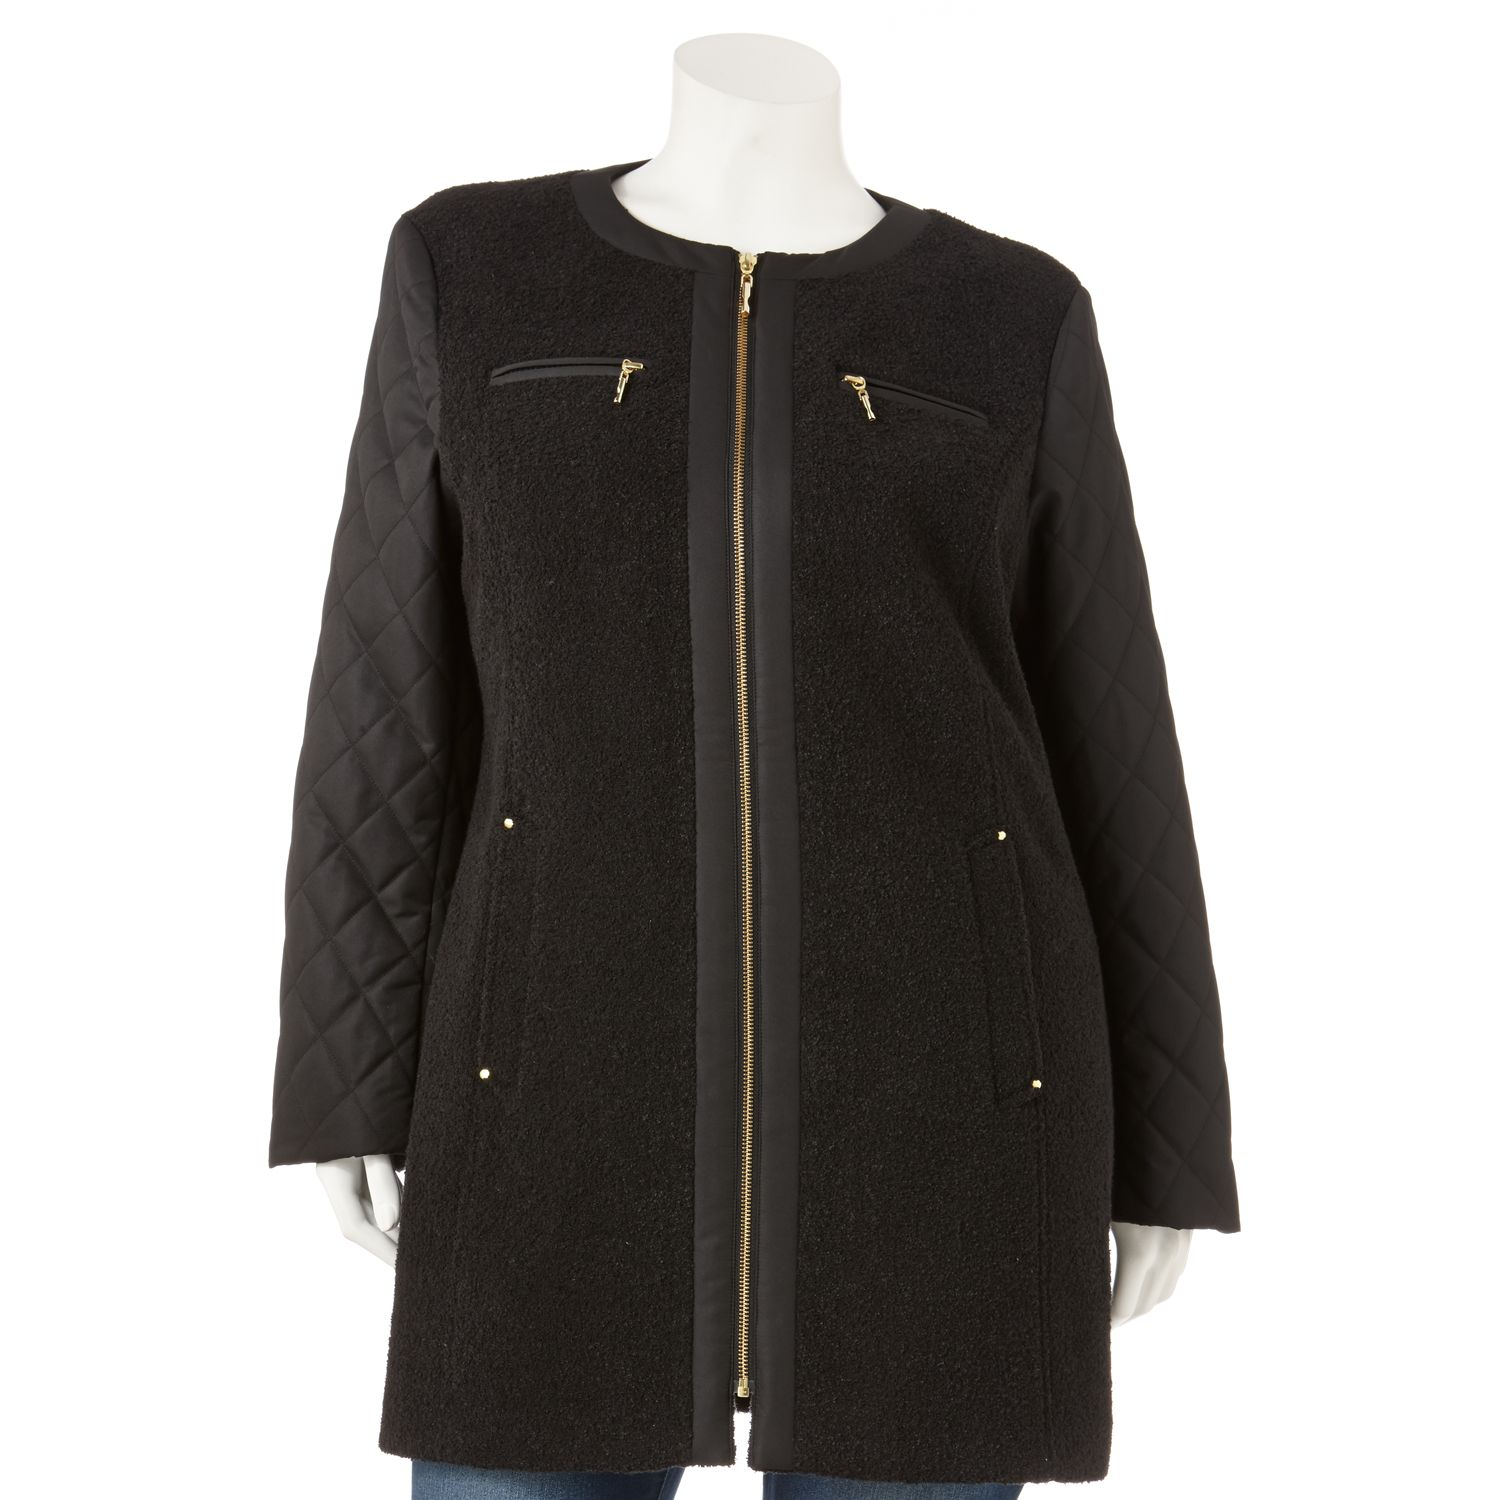 Apt. 9 Collarless Mixed-Media Coat - Women's Plus